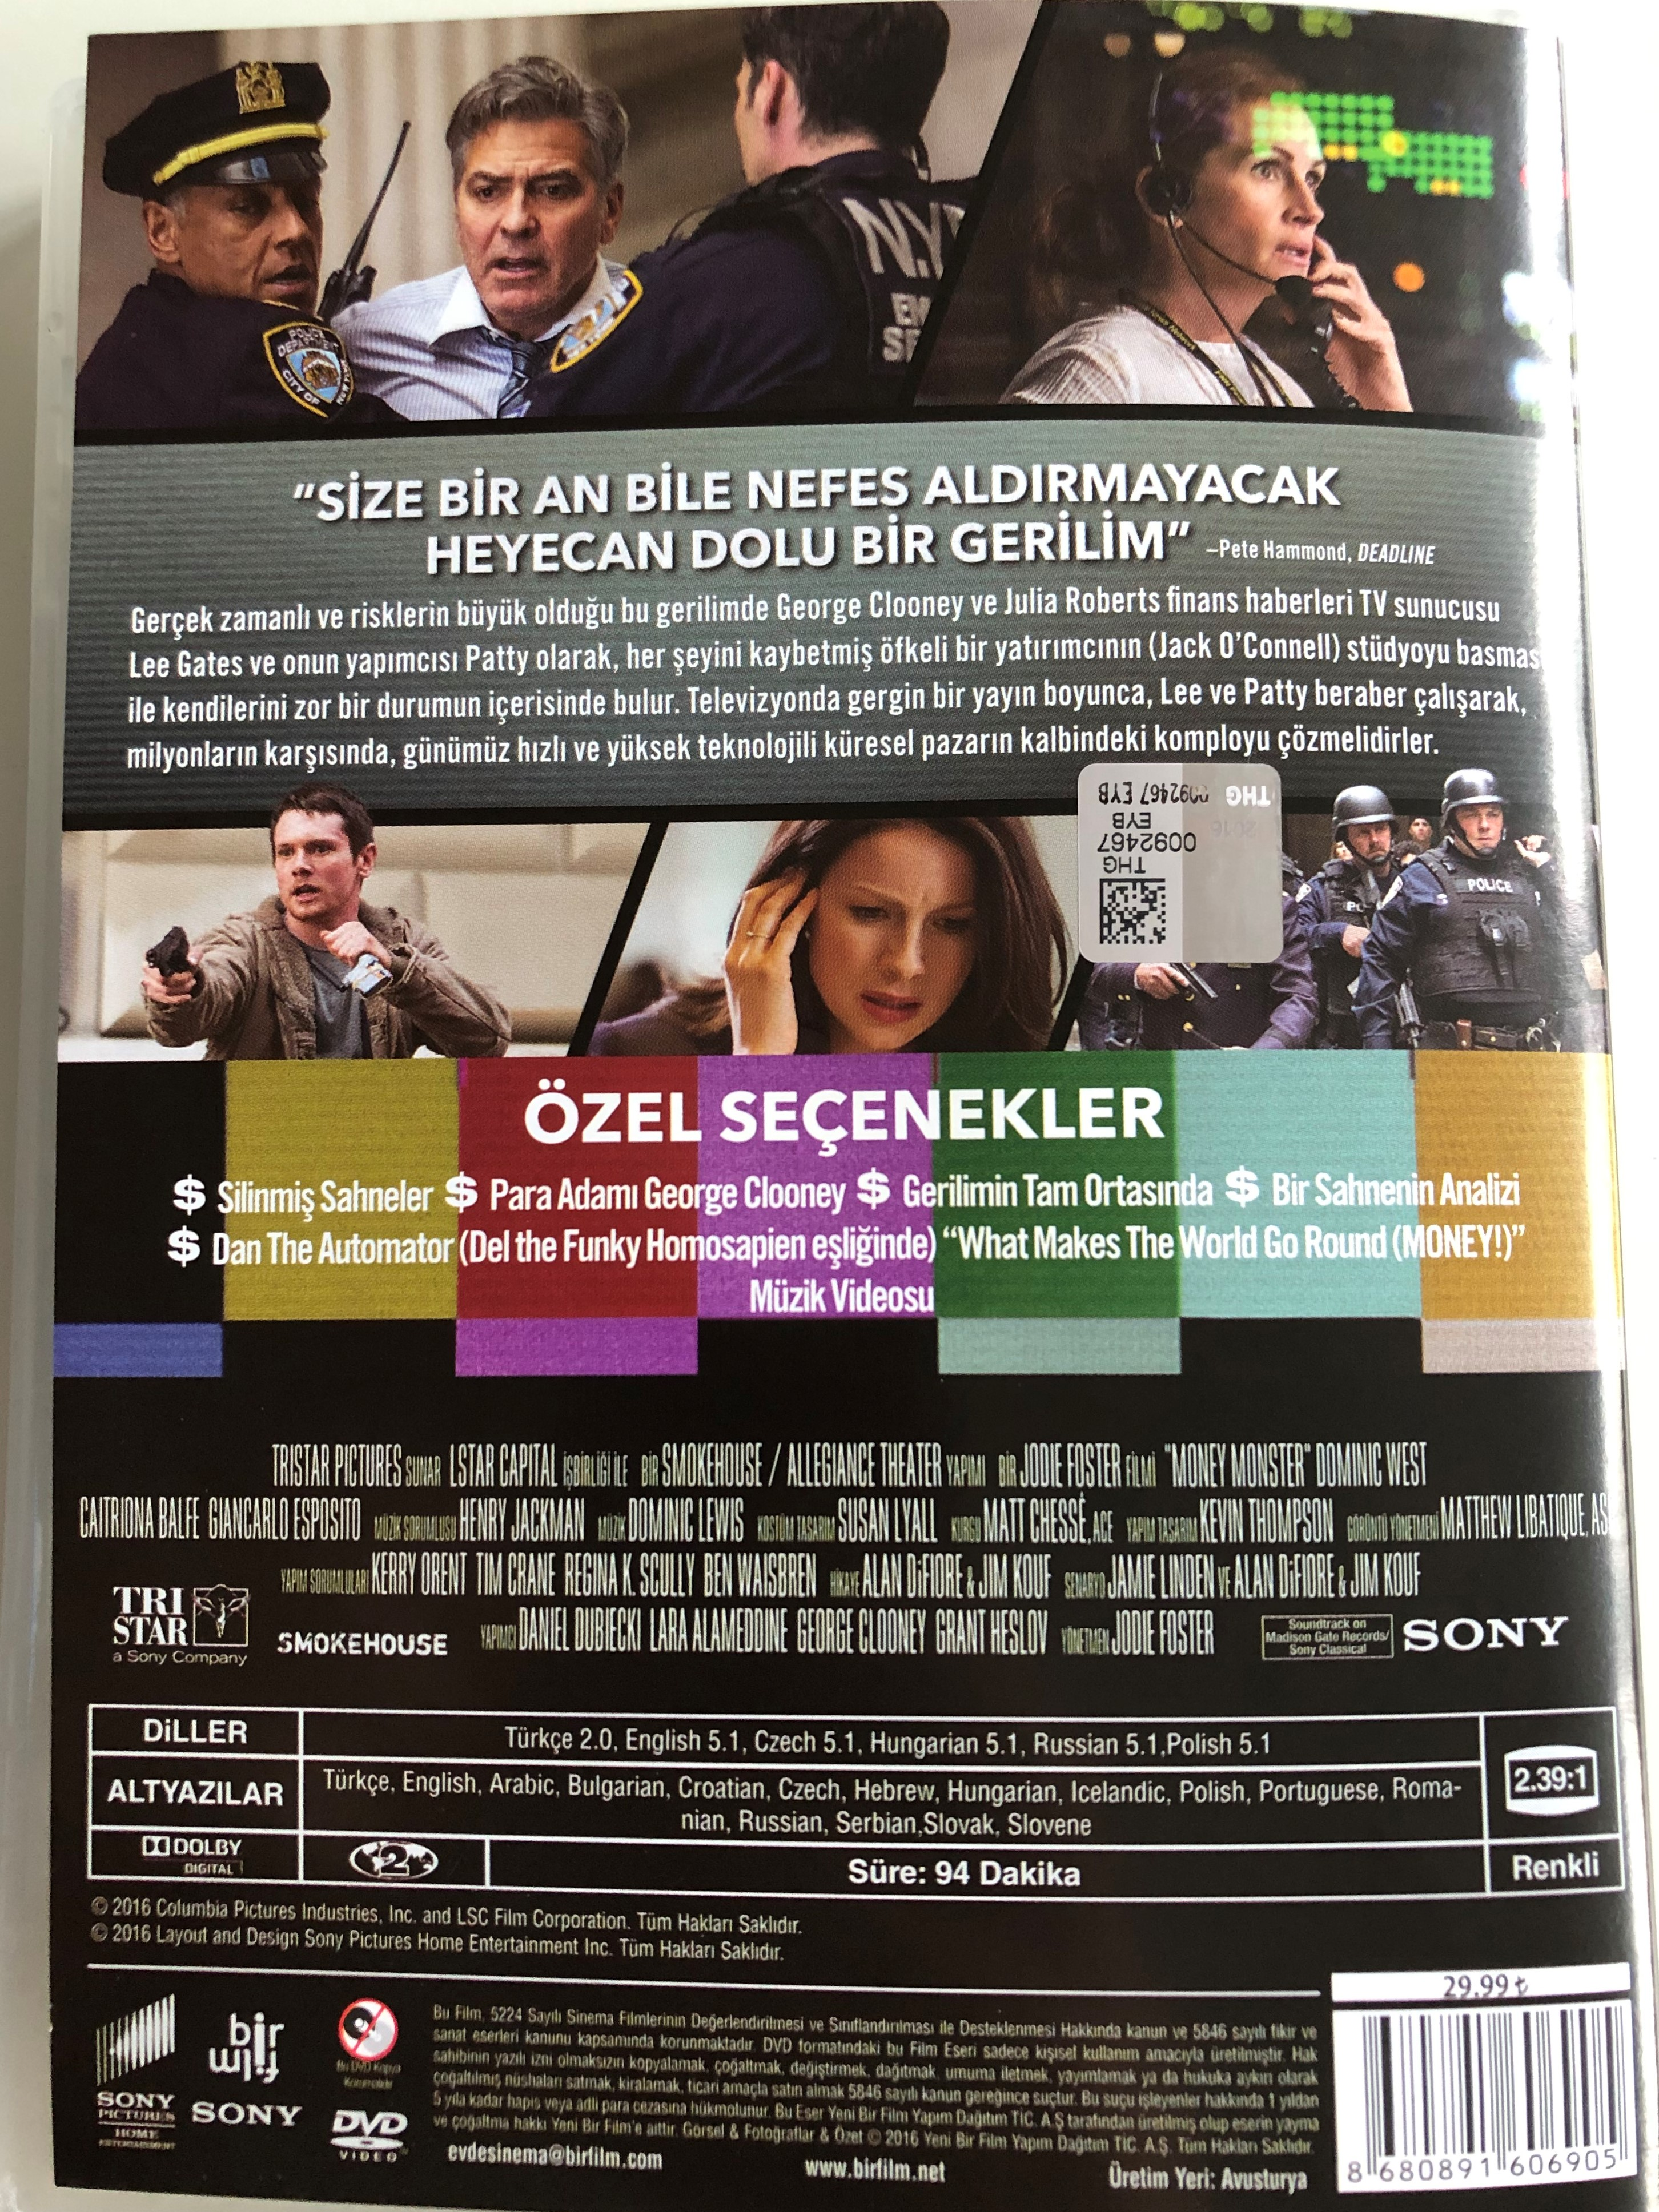 money-monster-dvd-2016-para-tuza-i-directed-by-jodie-foster-starring-george-clooney-2-.jpg